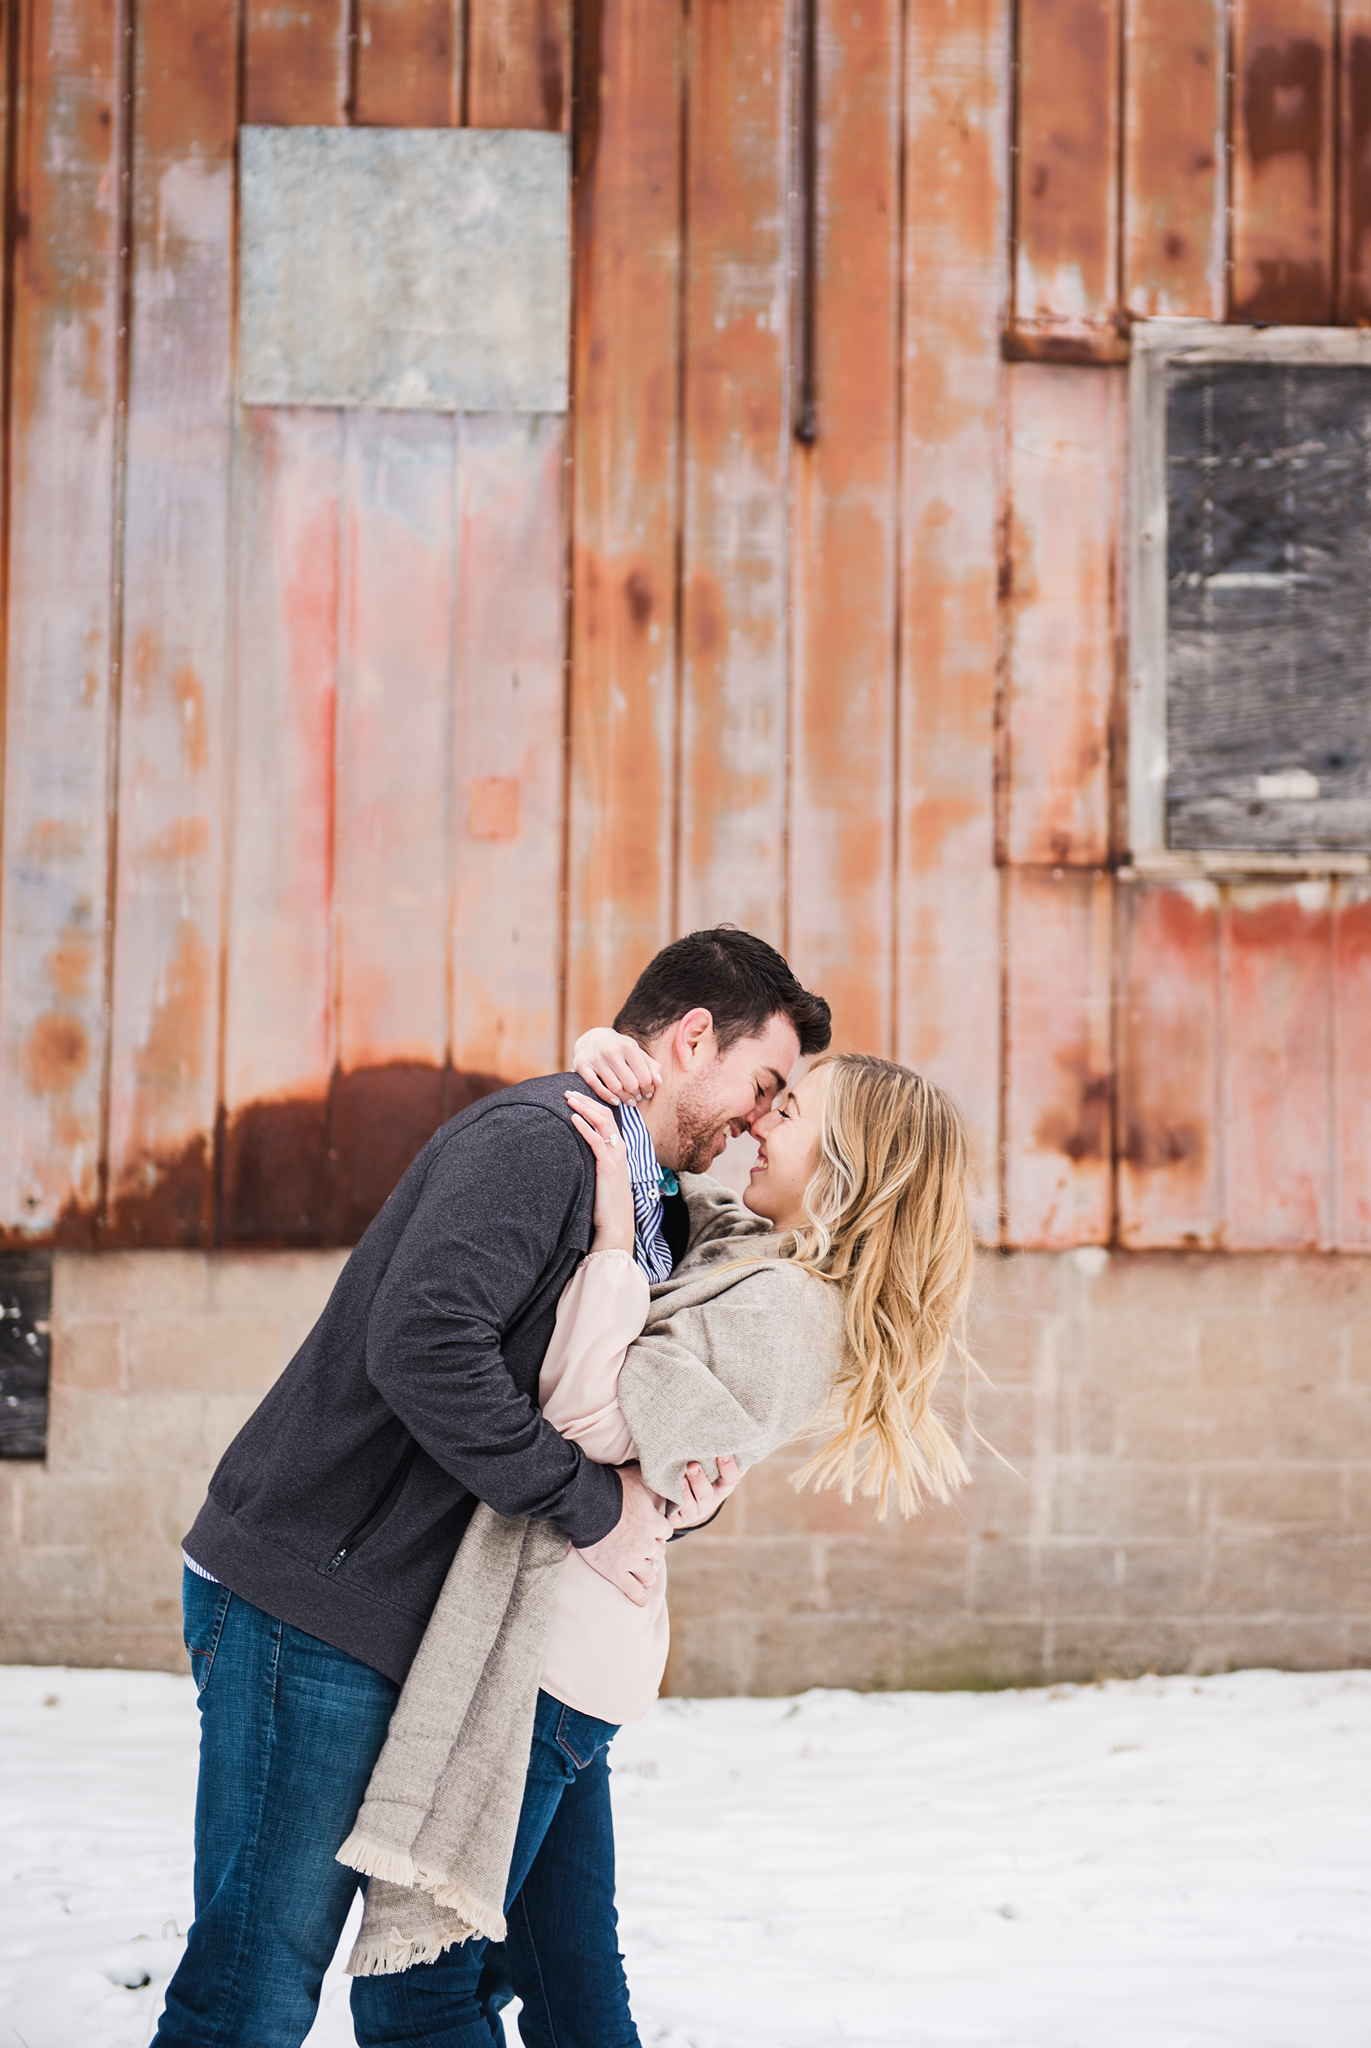 Schoen_Place_Rochester_Engagement_Session_JILL_STUDIO_Rochester_NY_Photographer_DSC_1239.jpg